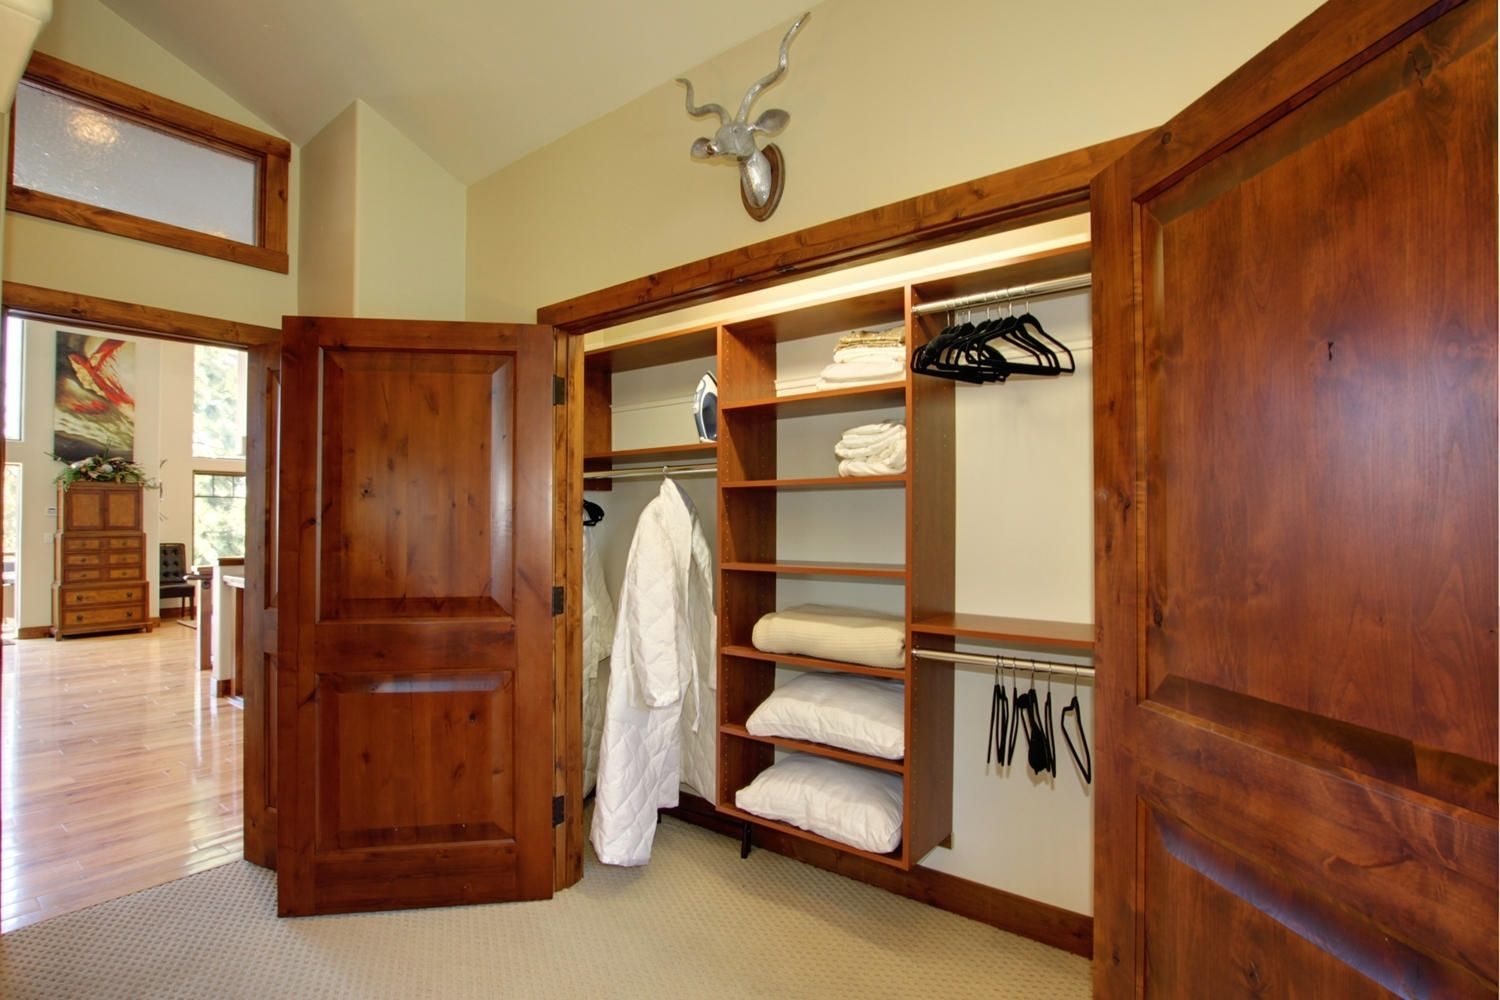 Master Bedroom Closet Design Adorable Master Bedroom Closet Design Master Bedroom Closet Design Free Review